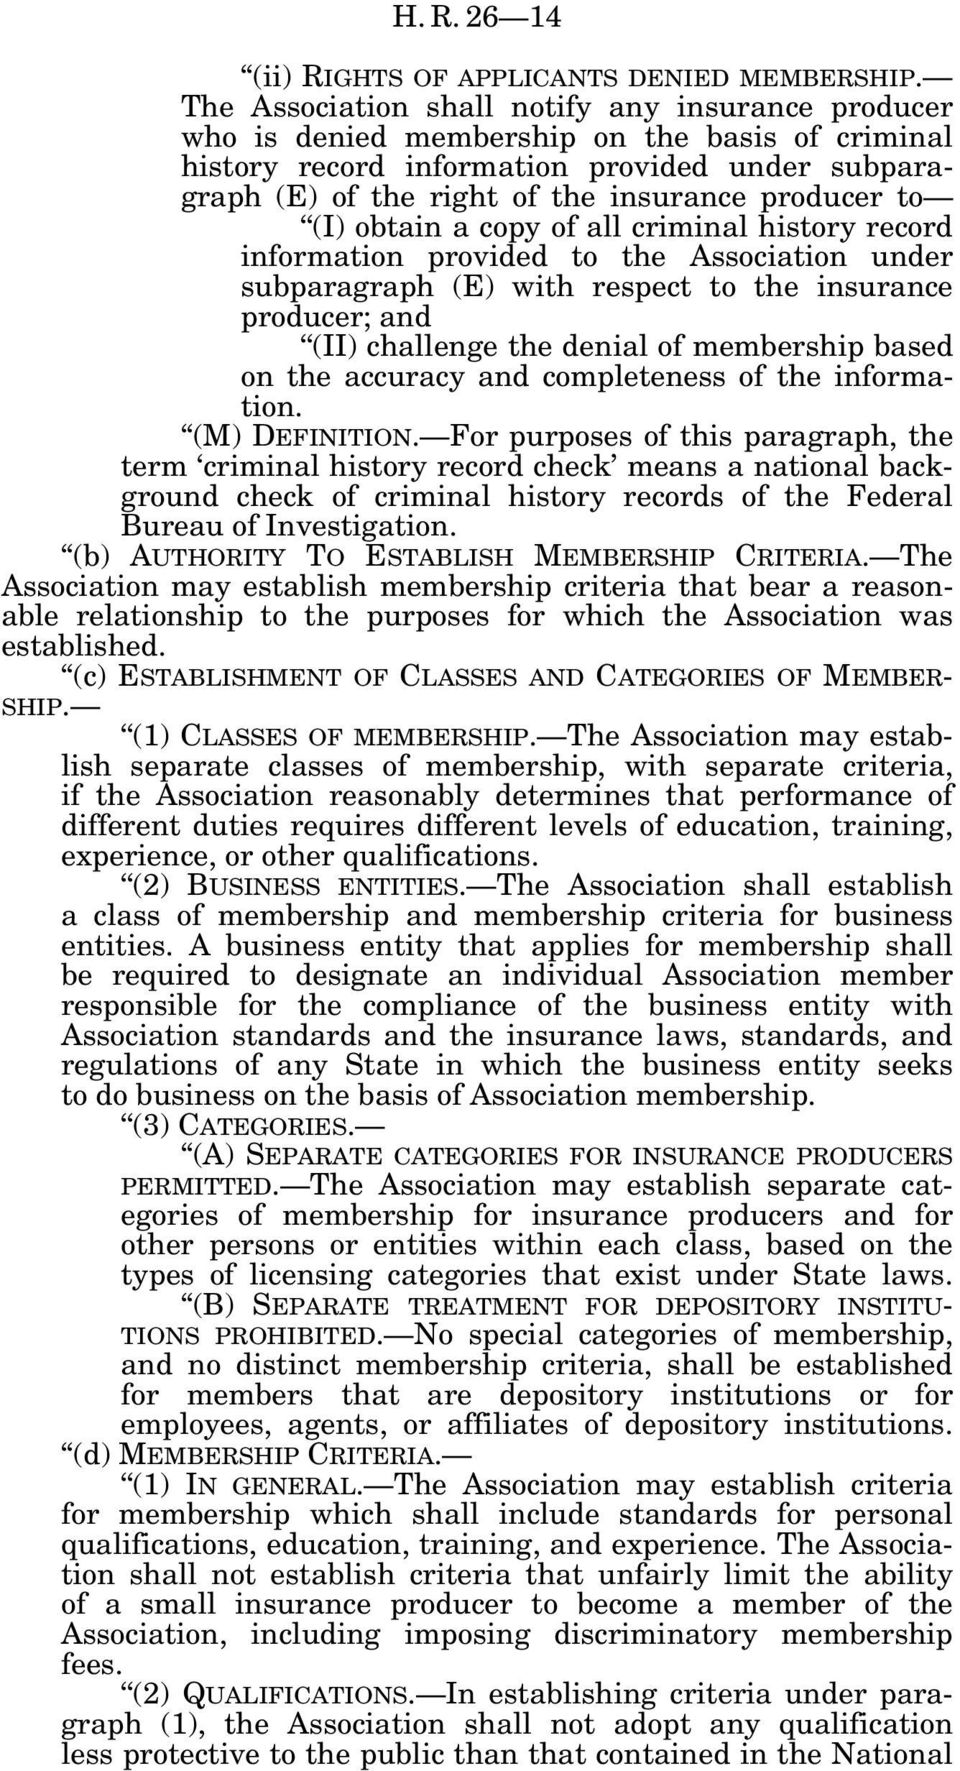 to (I) obtain a copy of all criminal history record information provided to the Association under subparagraph (E) with respect to the insurance producer; and (II) challenge the denial of membership